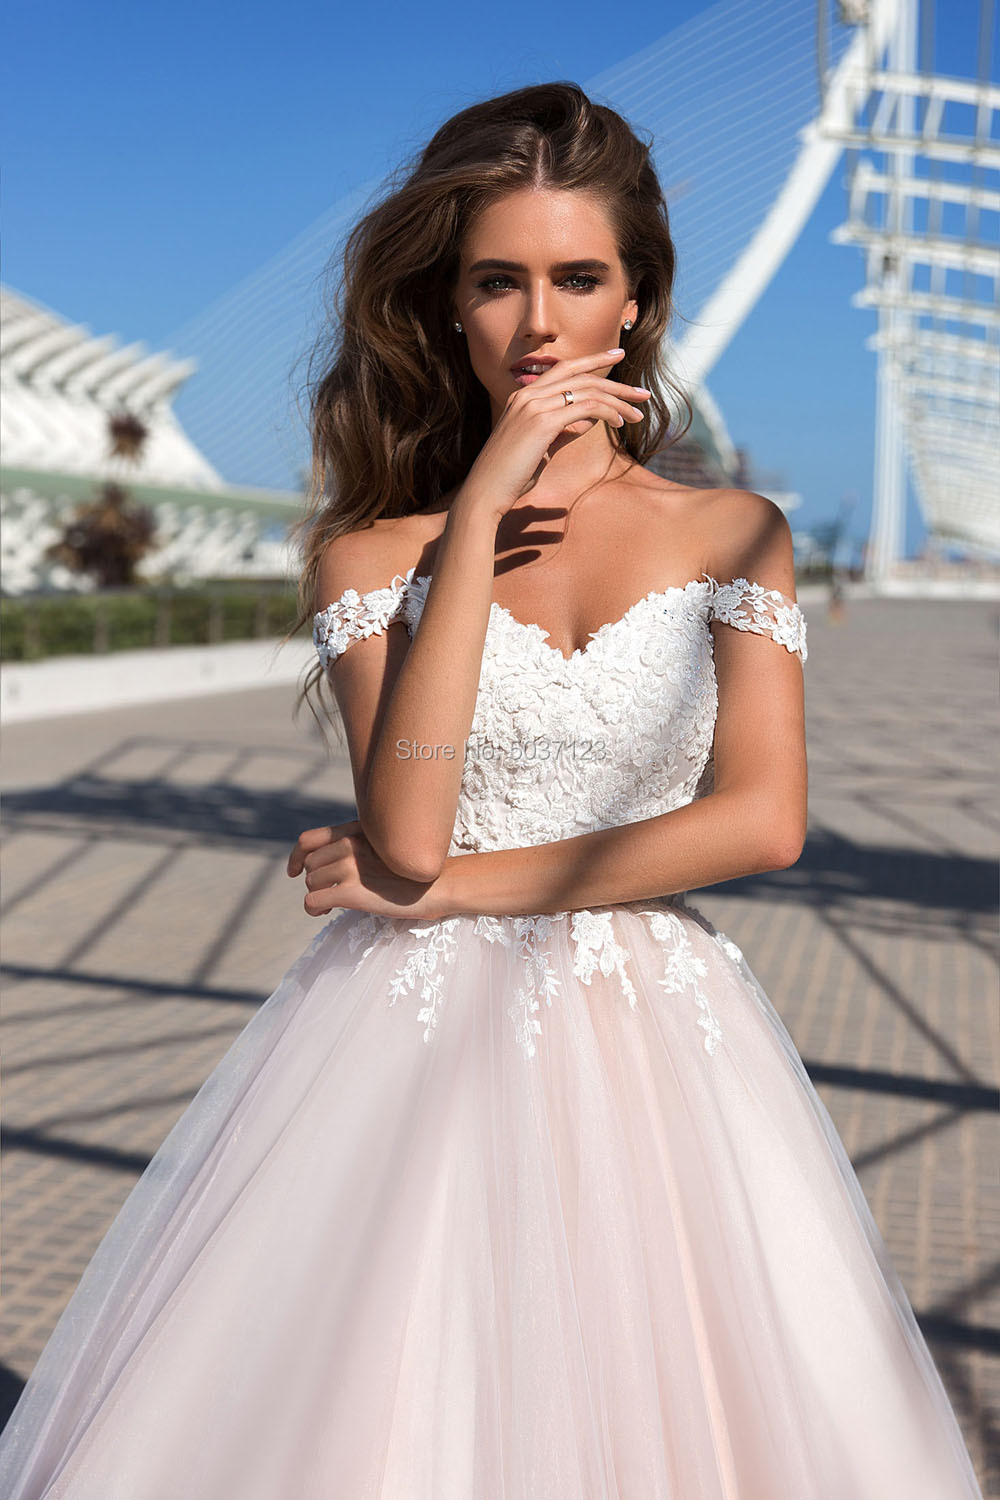 Image 3 - Beach Pink Wedding Dresses 2019 Off the Shoulder Lace Appliques Tulle Bridal Wedding Gowns Sleeveless Lace Up Vestido De Noiva-in Wedding Dresses from Weddings & Events